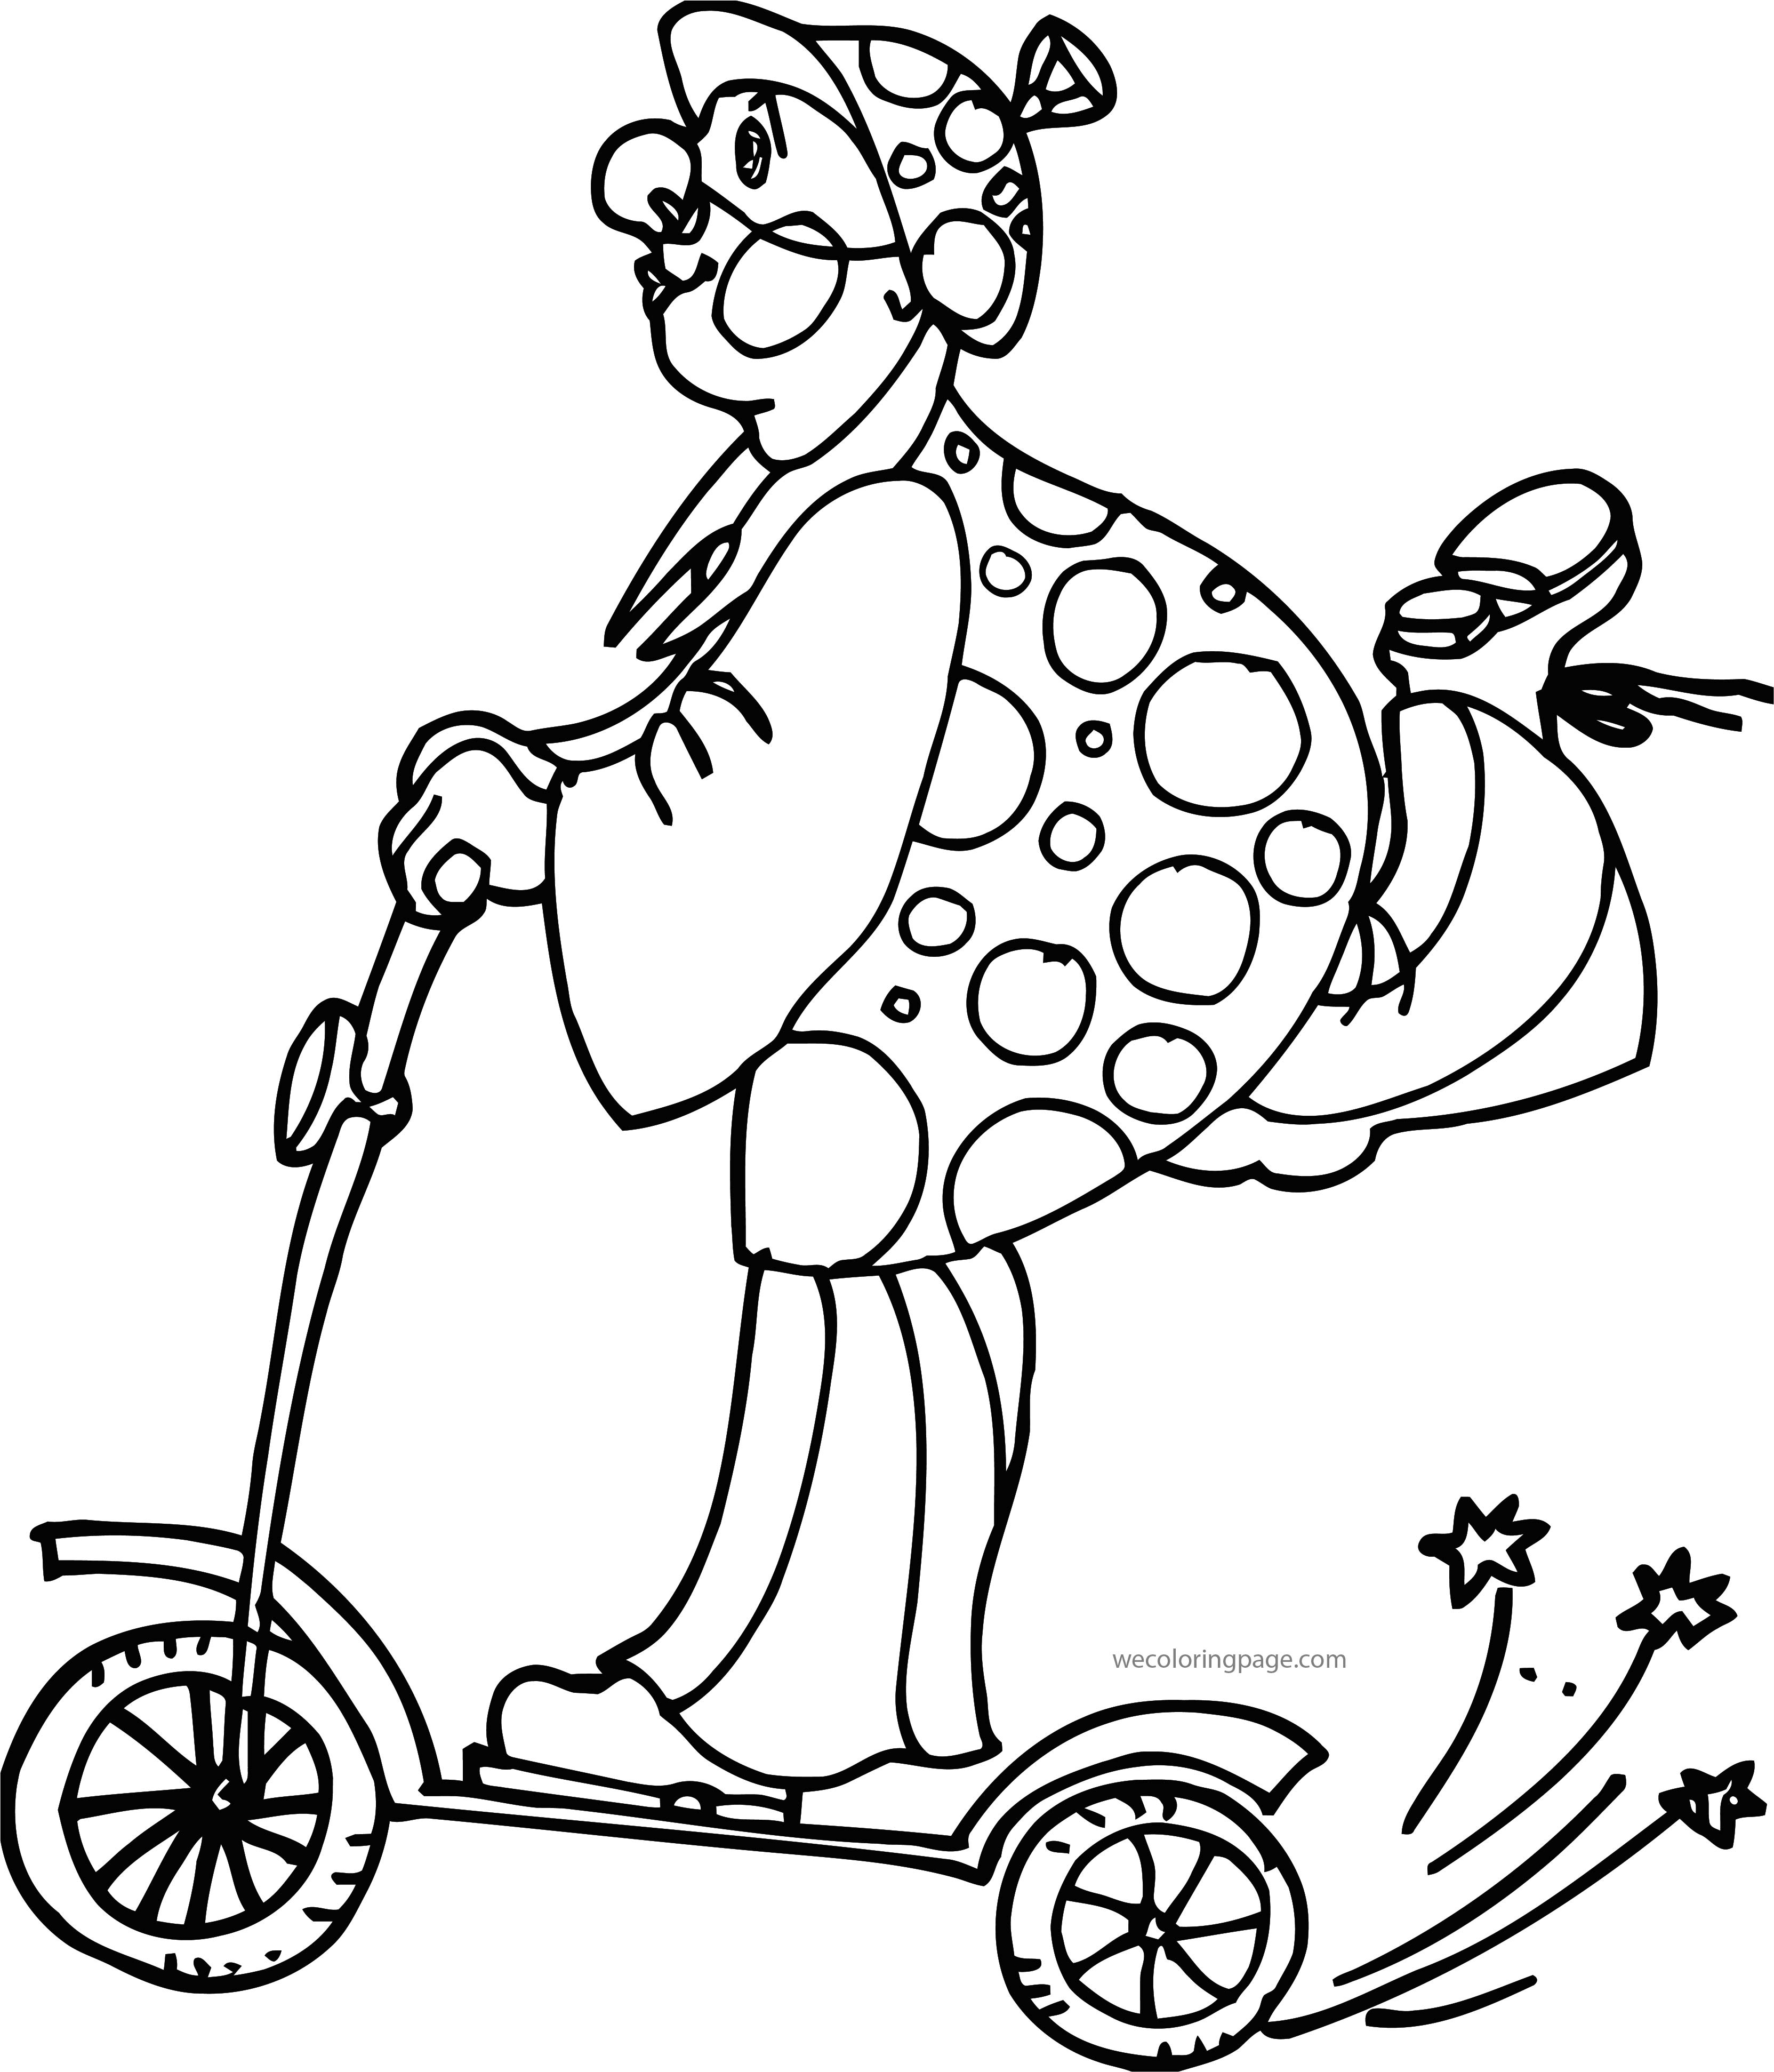 Clown Skater Coloring Page